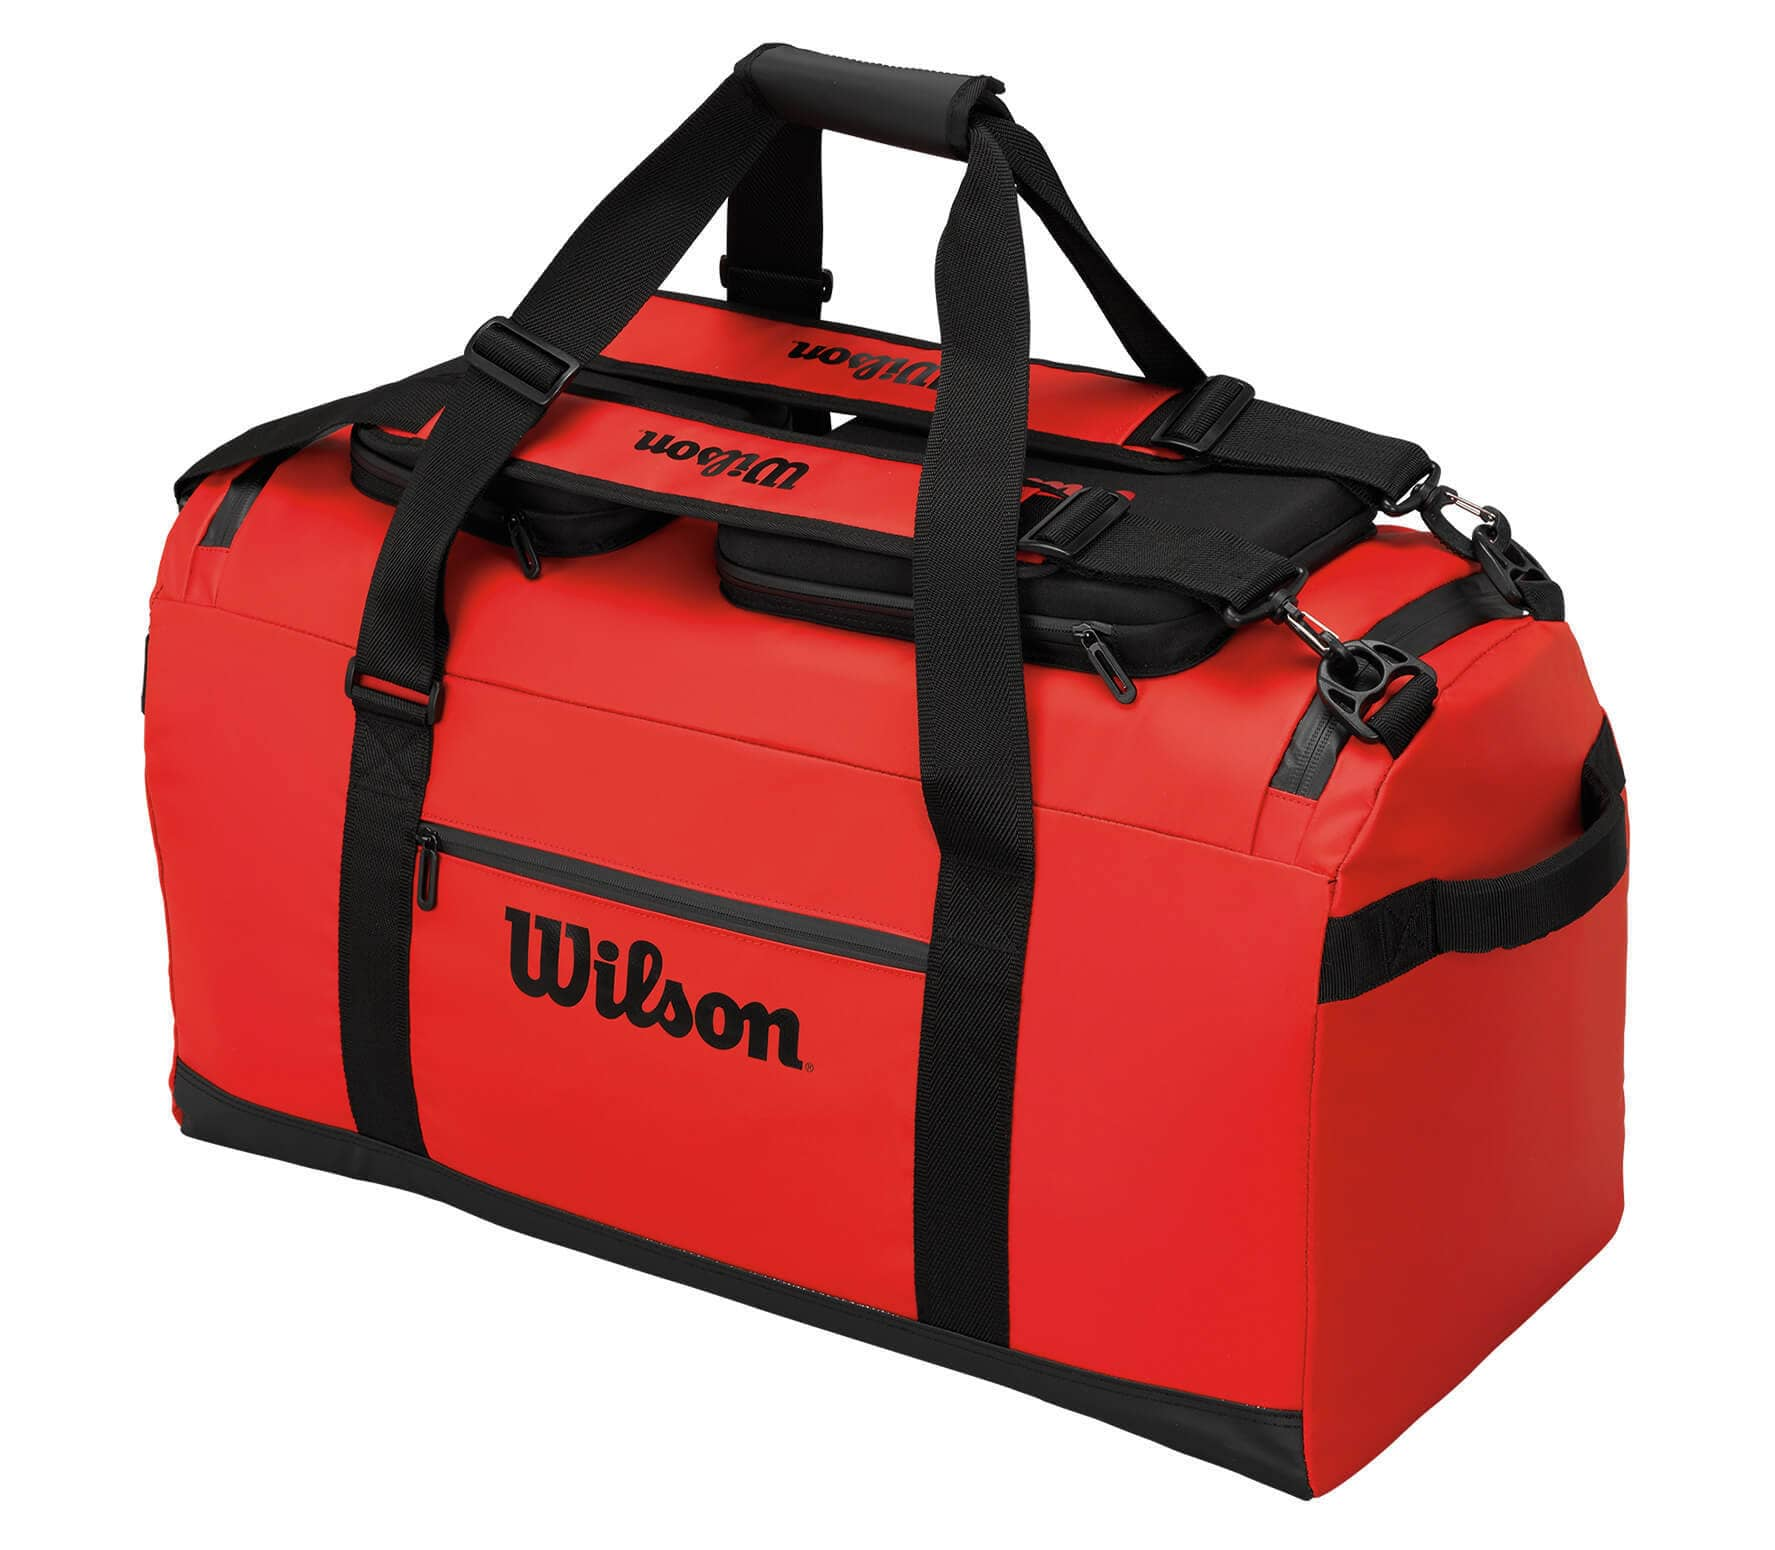 40c68a65b40b Wilson - Tech duffel bag tennis bag (red black) - buy it at the ...